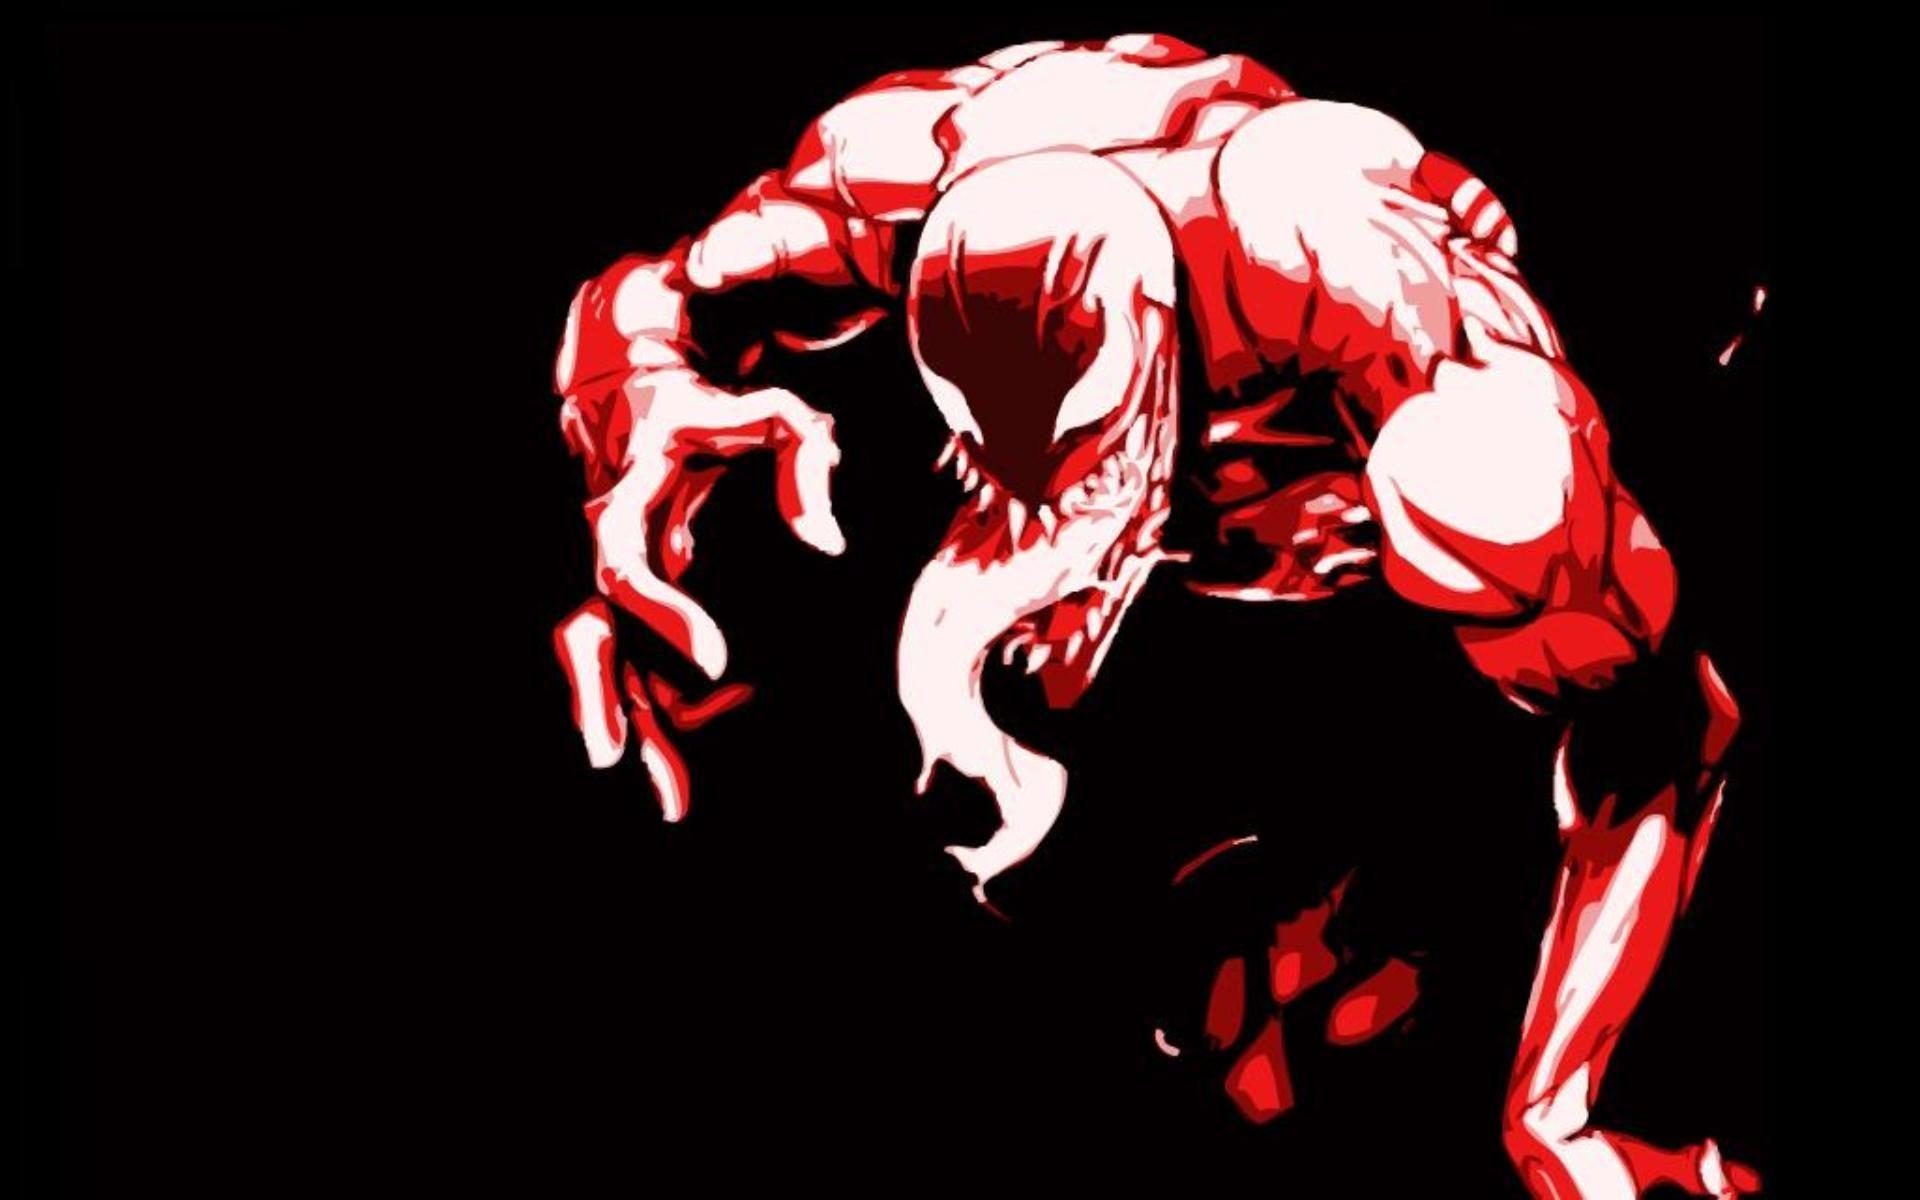 Carnage Run Away From Venom Wallpapers Image taken from Carnage